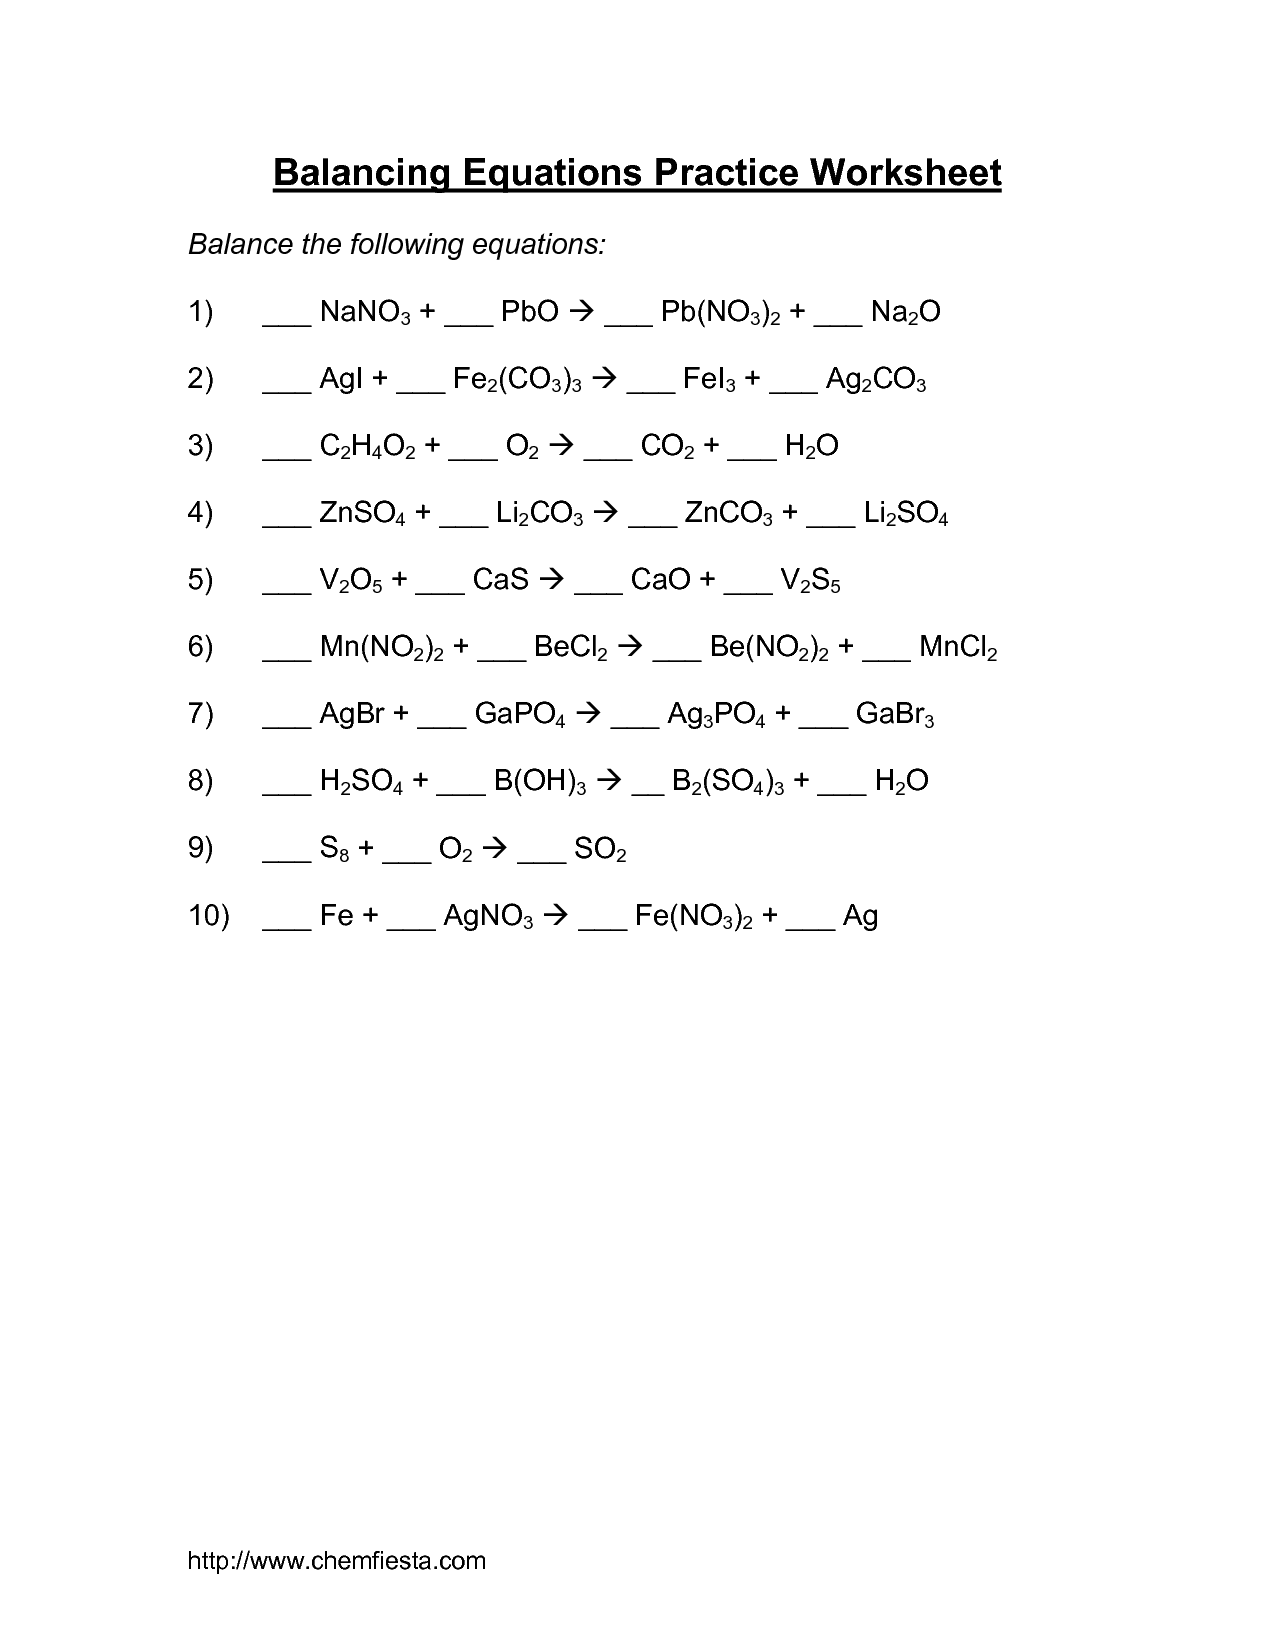 16 Best Images Of Practice Balancing Equations Worksheet Answer Key